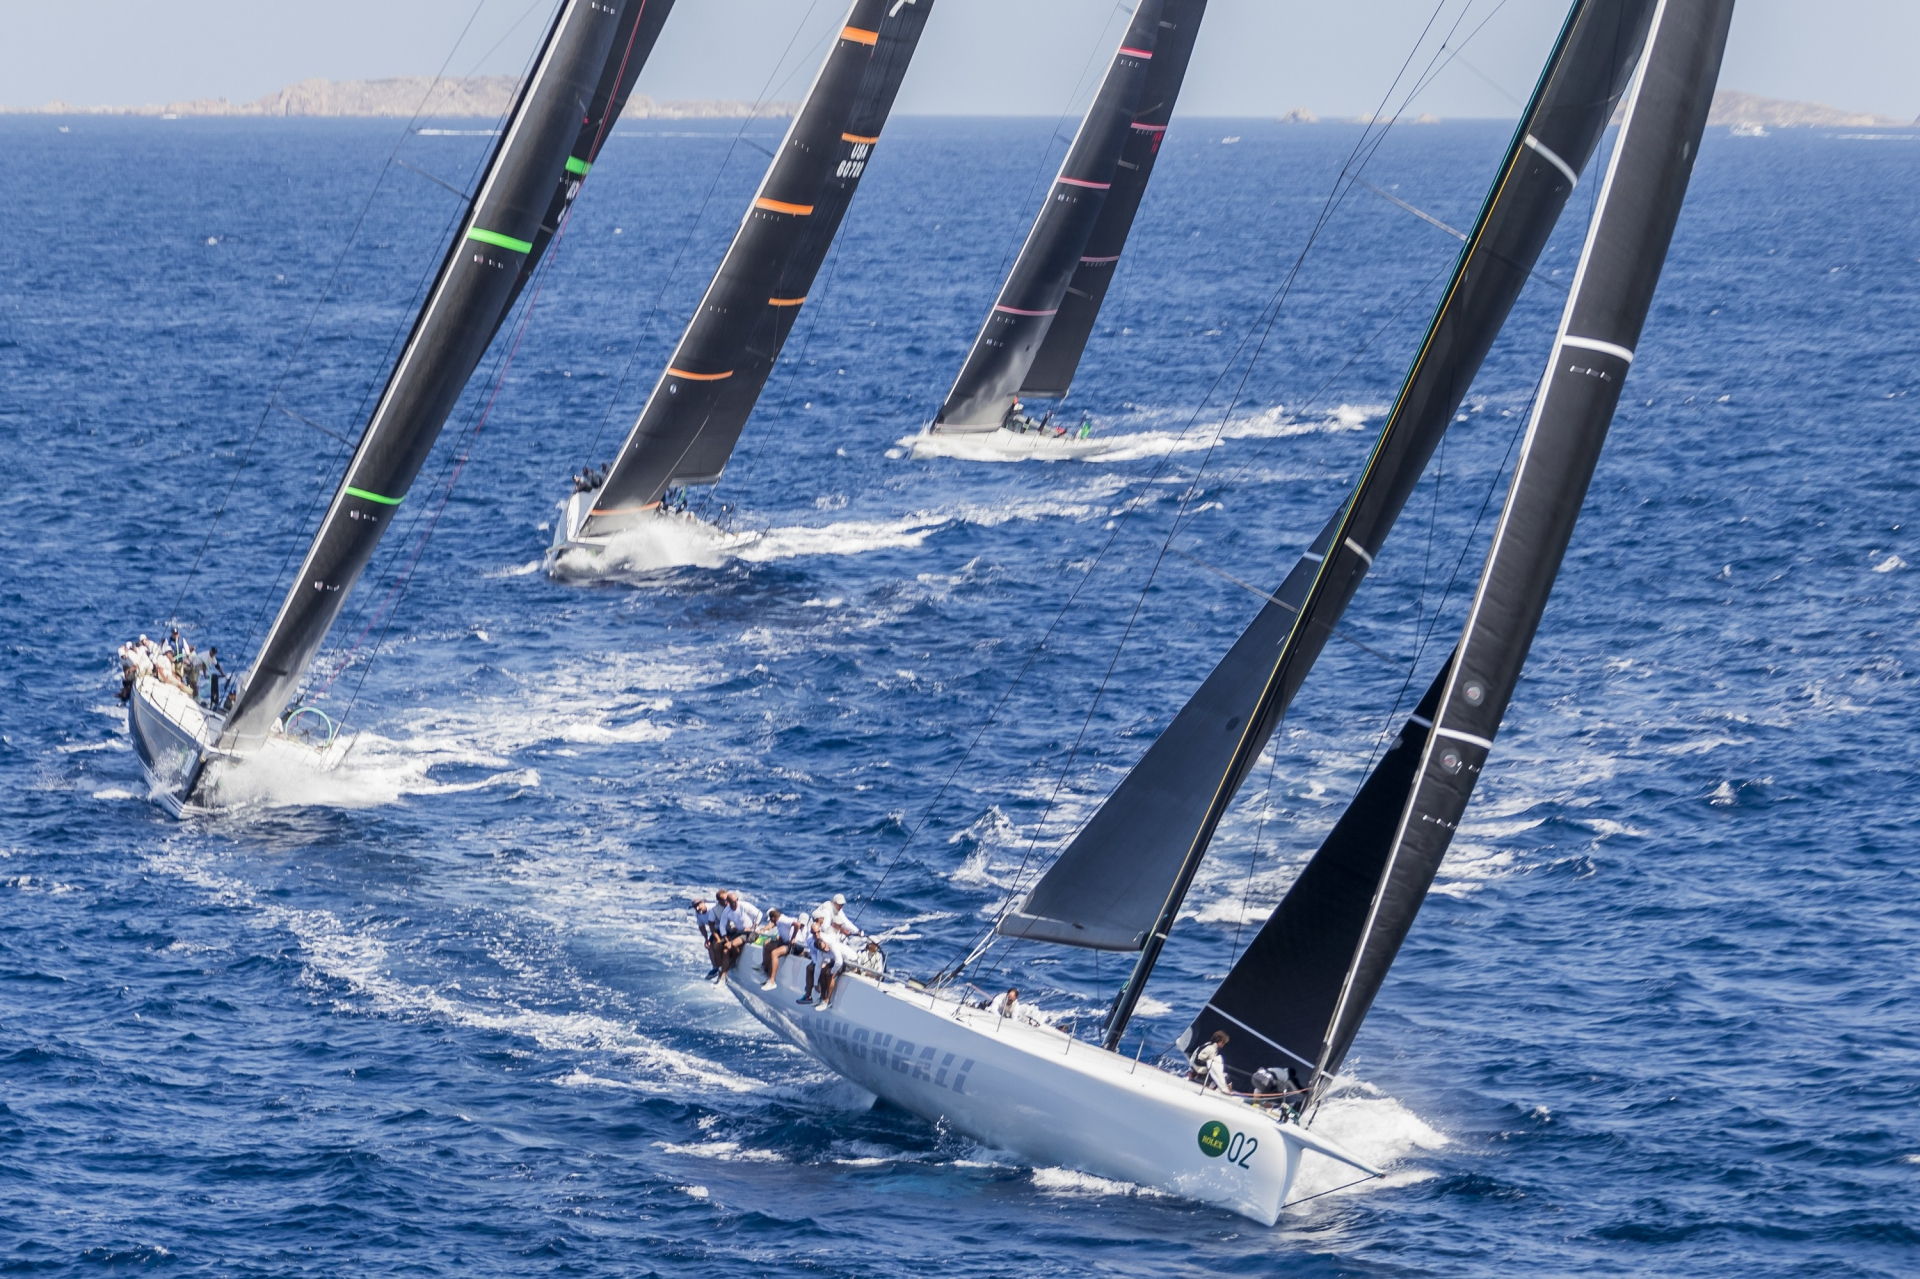 Maxi Yacht Rolex Cup: top conditions and close competition make the day - NEWS - Yacht Club Costa Smeralda